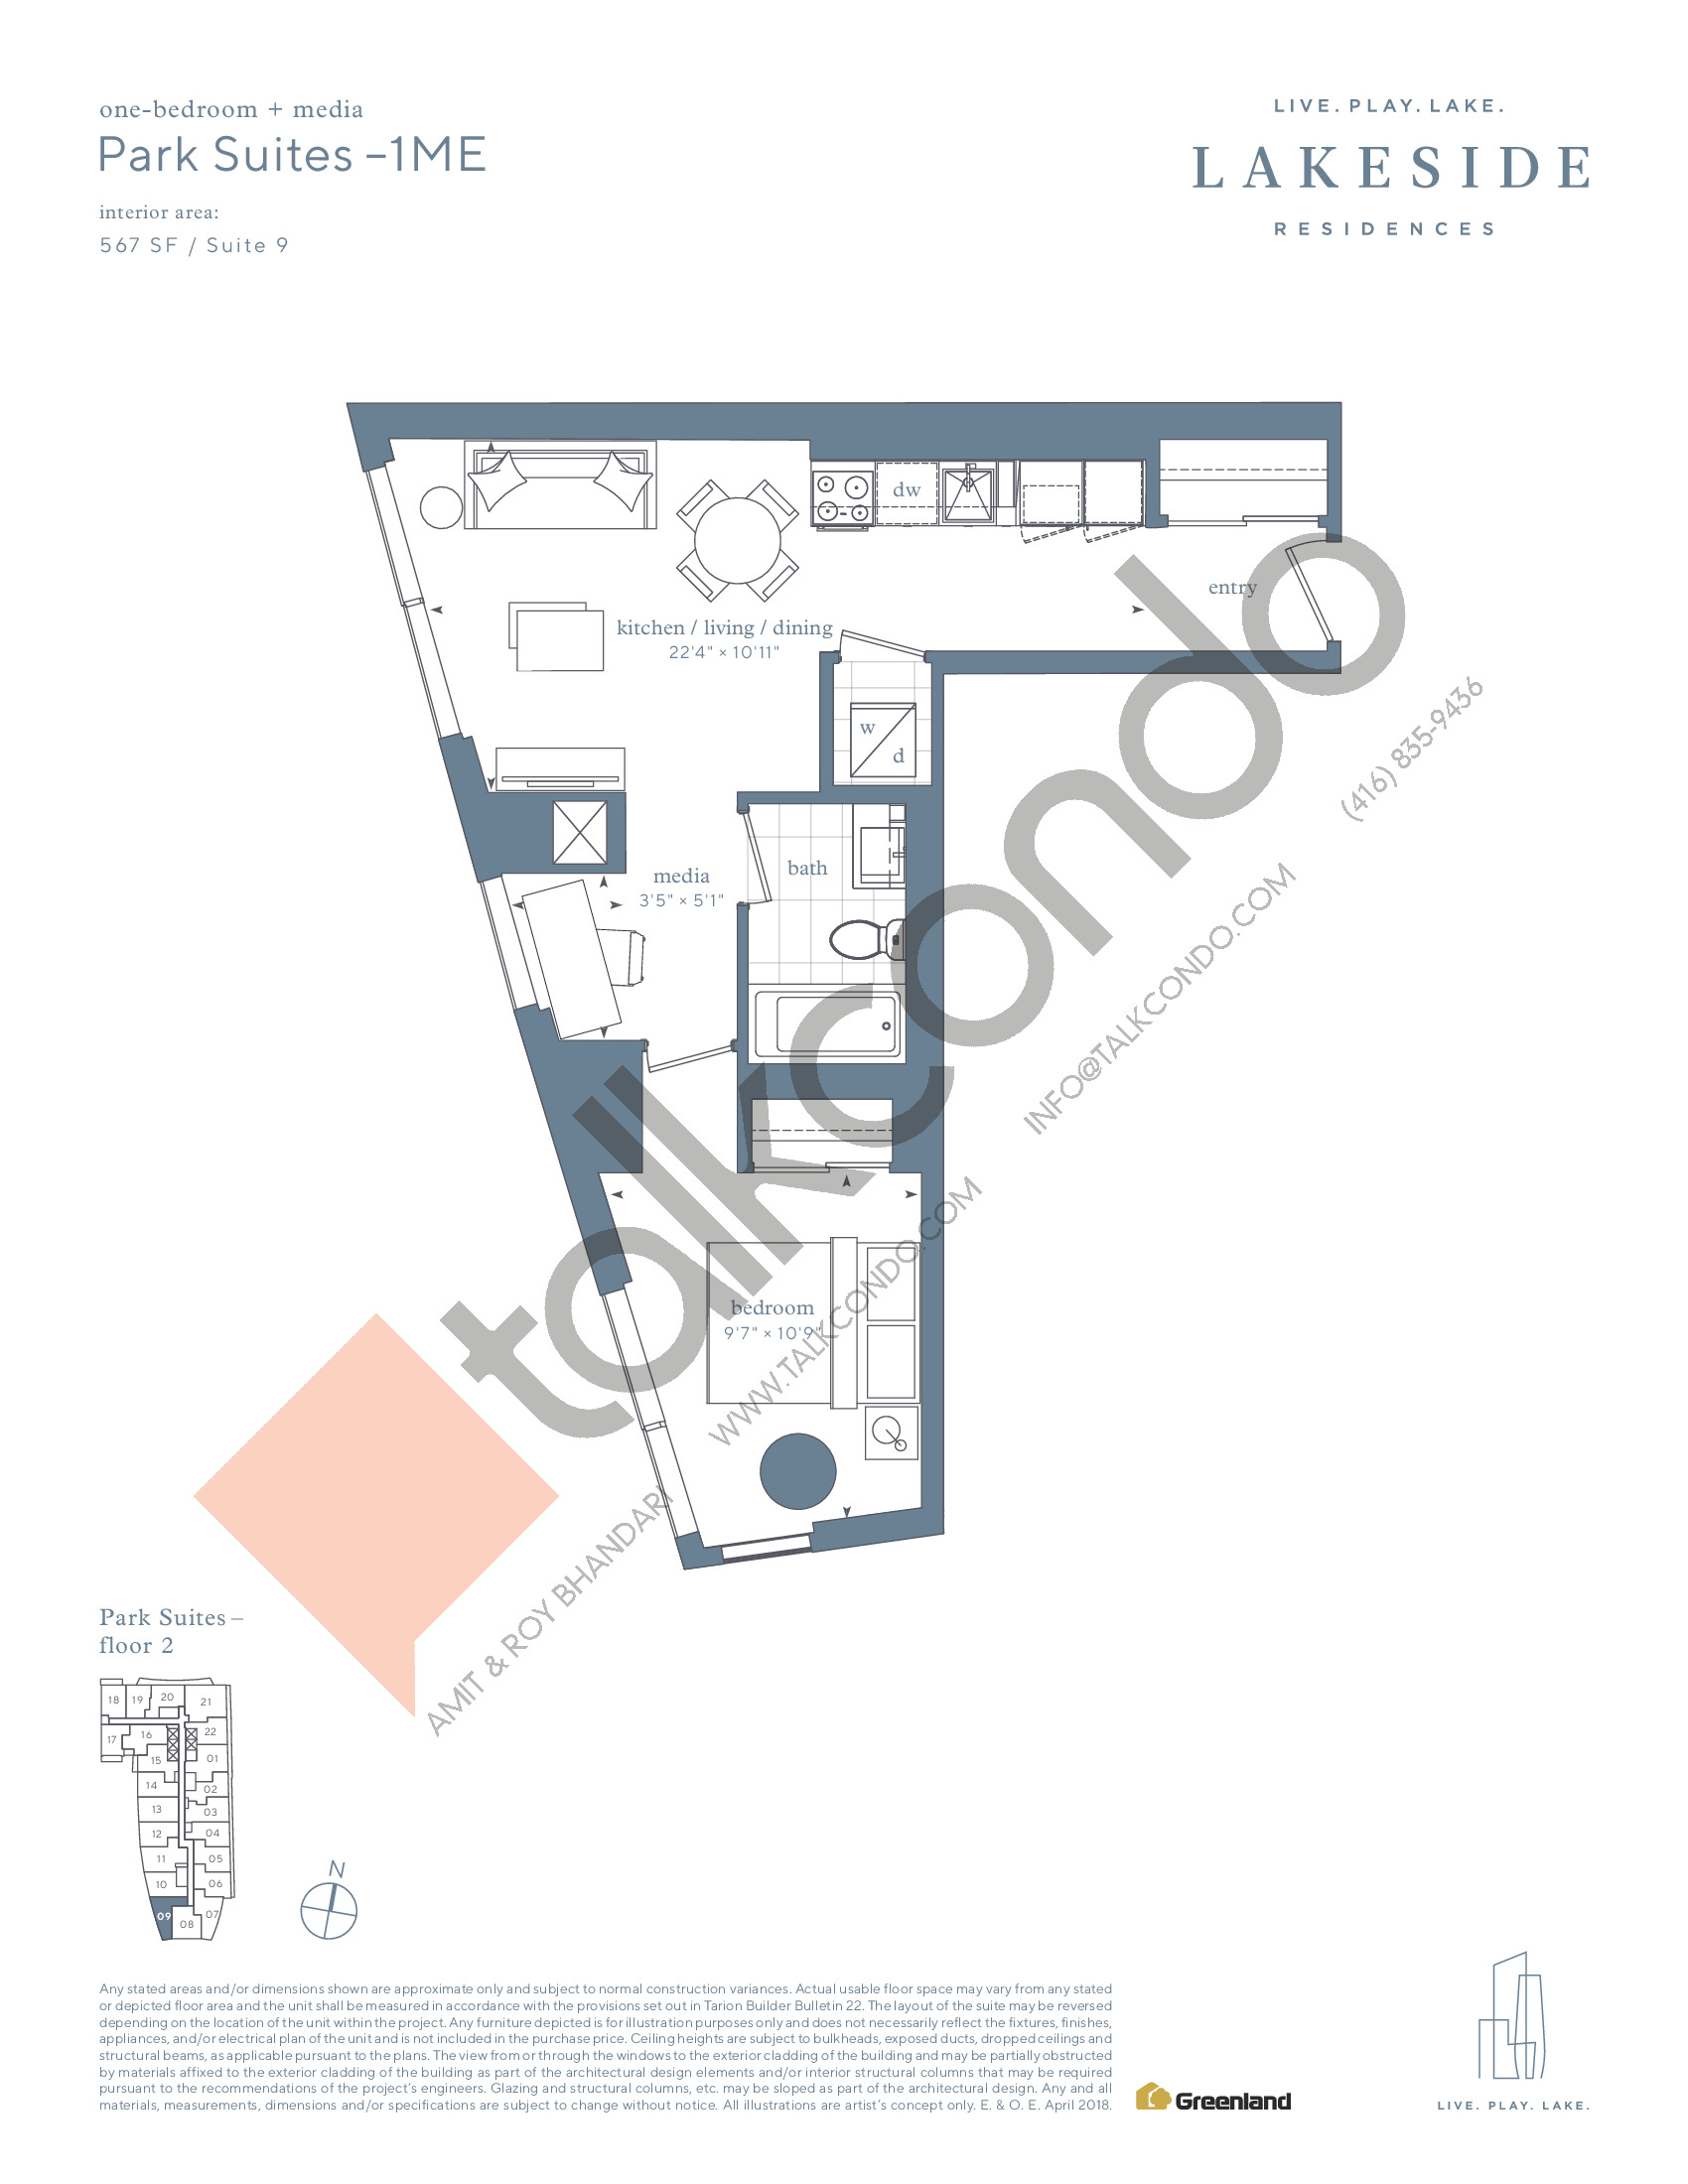 Park Suites - 1ME Floor Plan at Lakeside Residences - 567 sq.ft